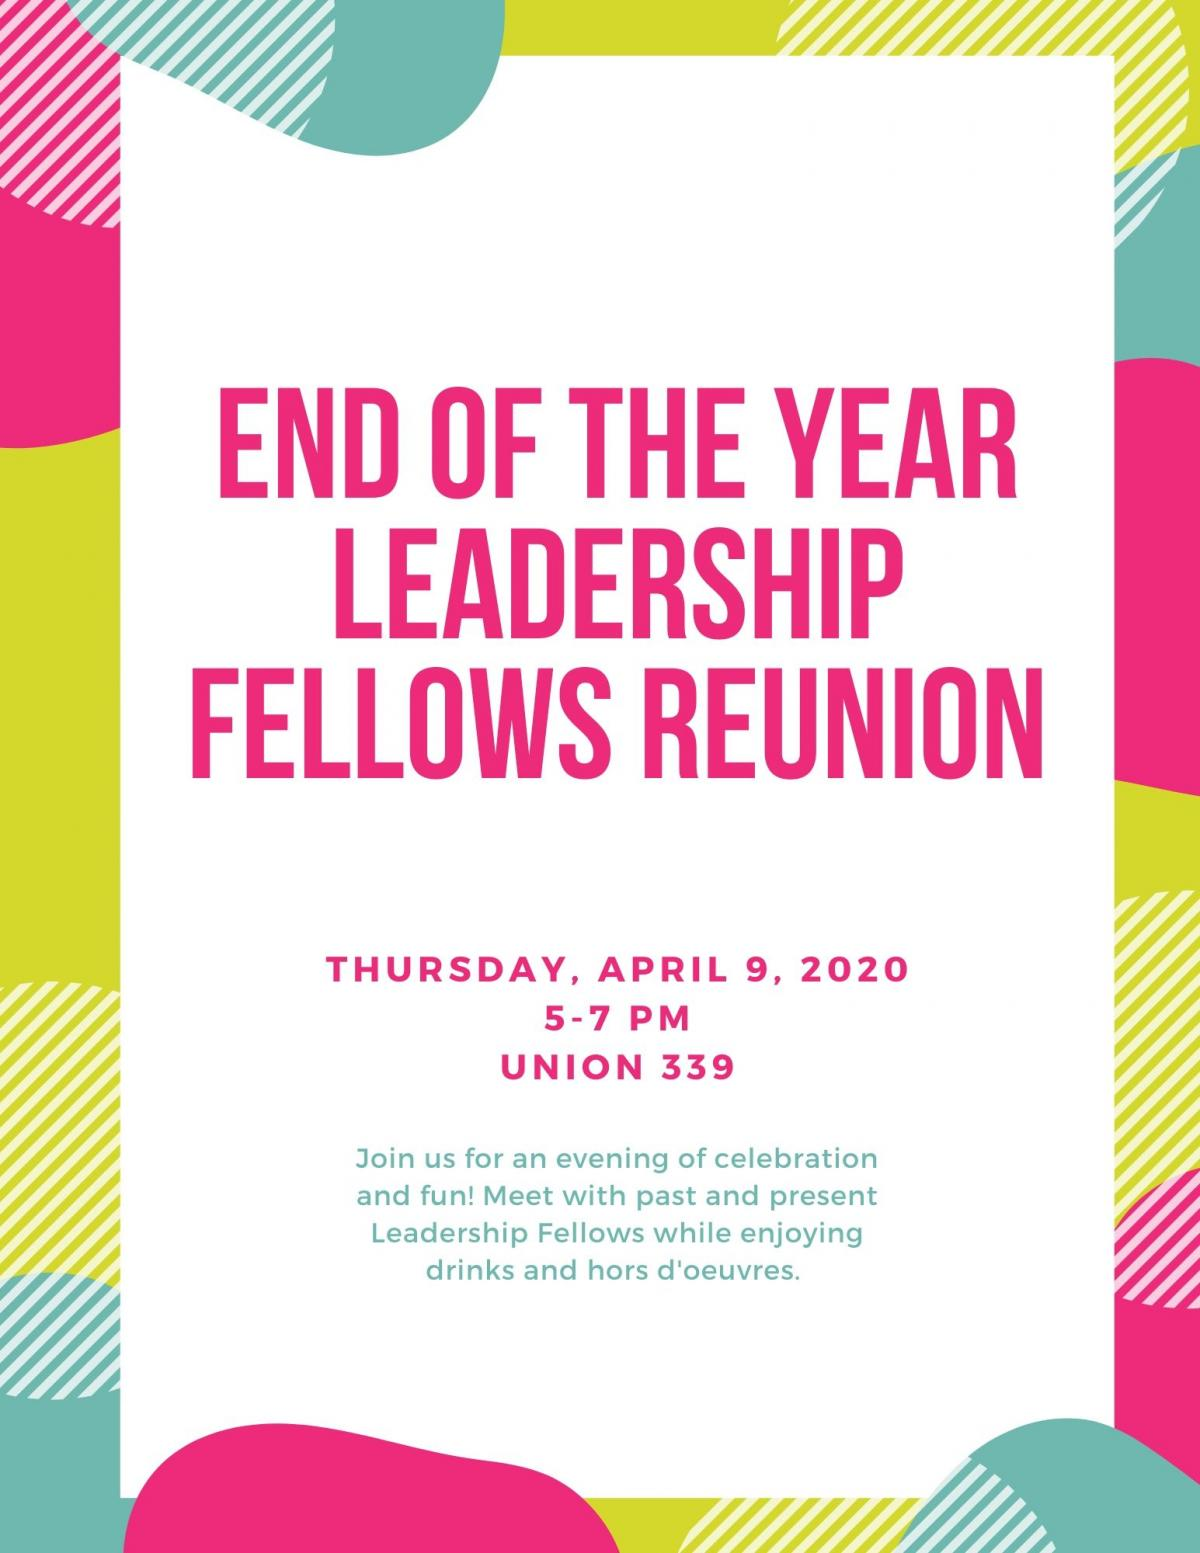 Join us for an evening of celebration and fun! Meet with past and present Leadership Fellows while enjoying drinks and hors d'oeuvres.